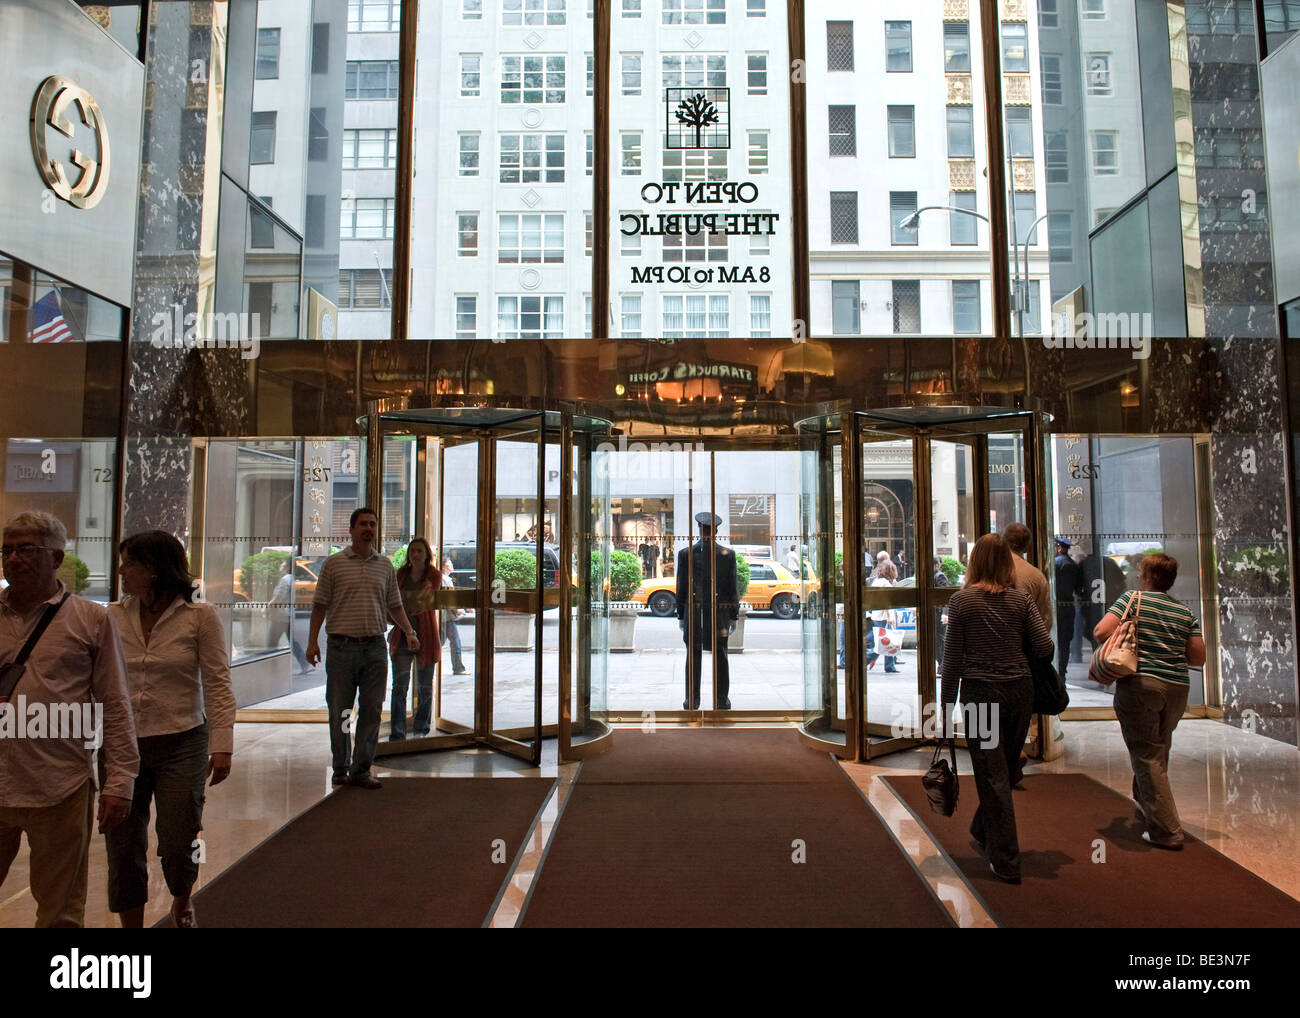 Entrance To The Trump Tower On Fifth Avenue From The